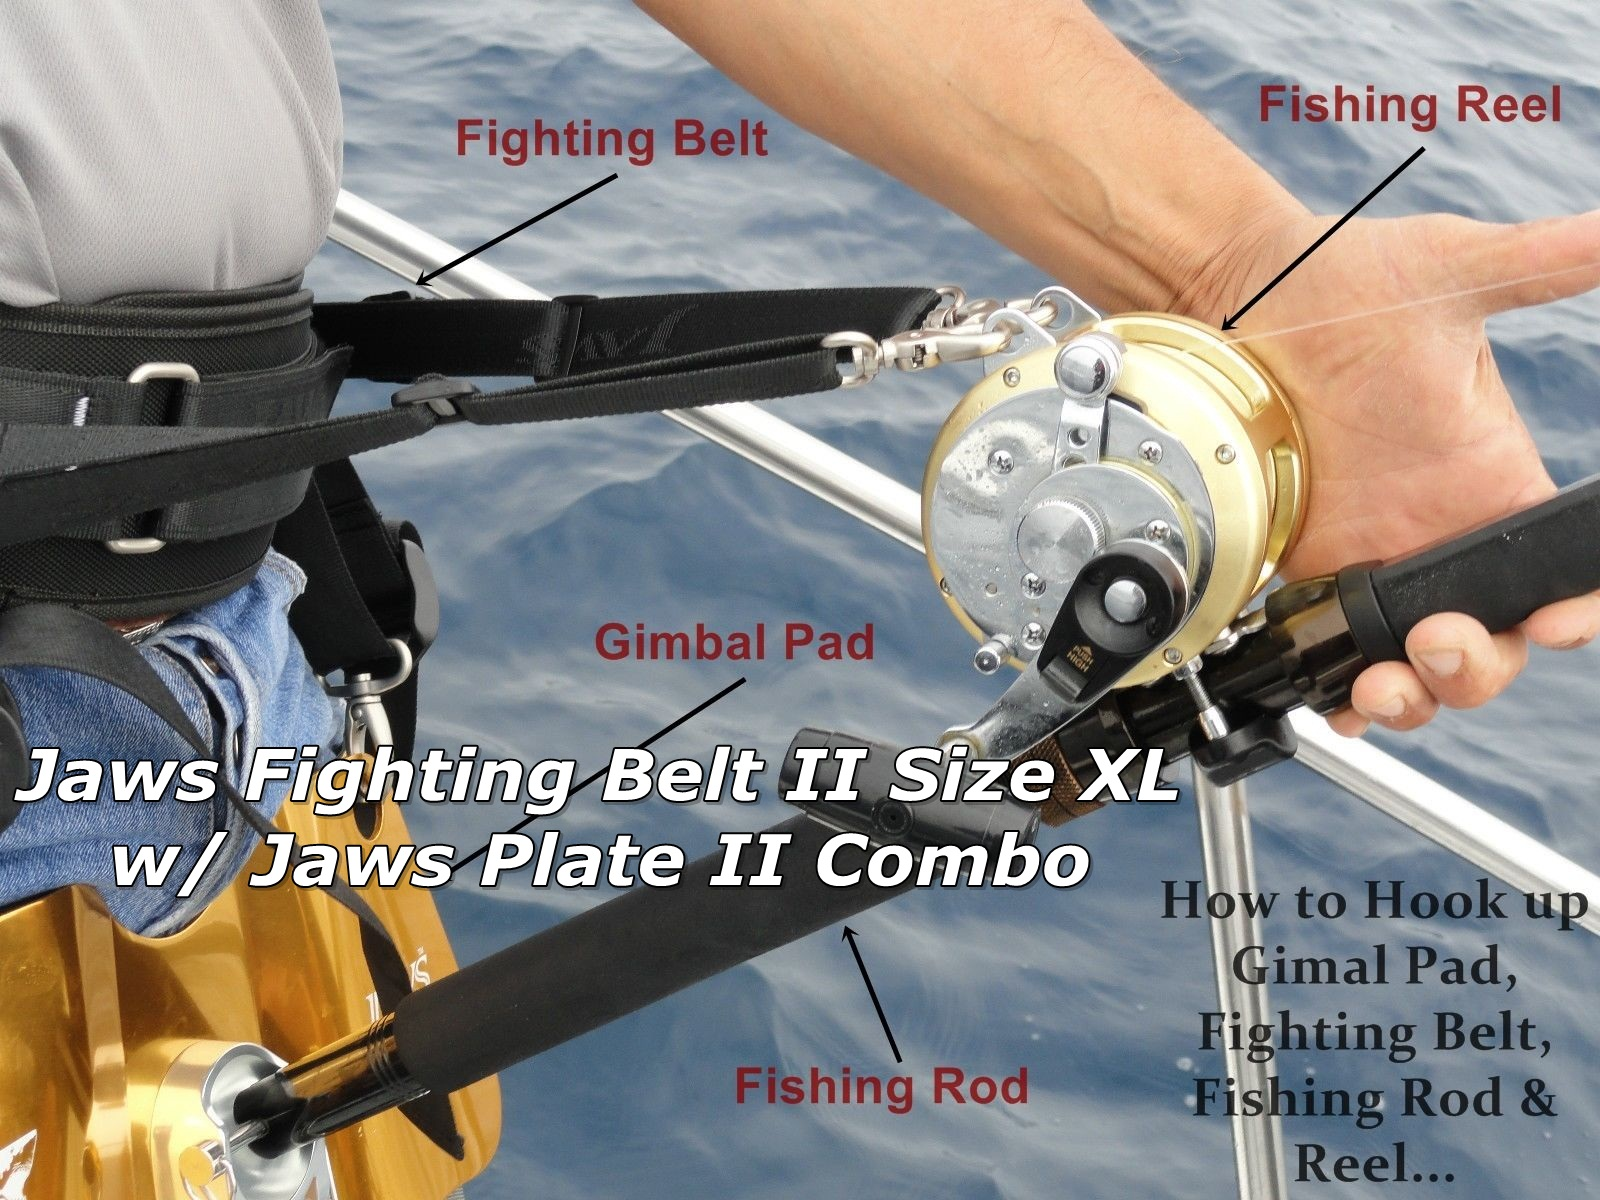 Flighting Belt Size XL with Gimbal Pad II